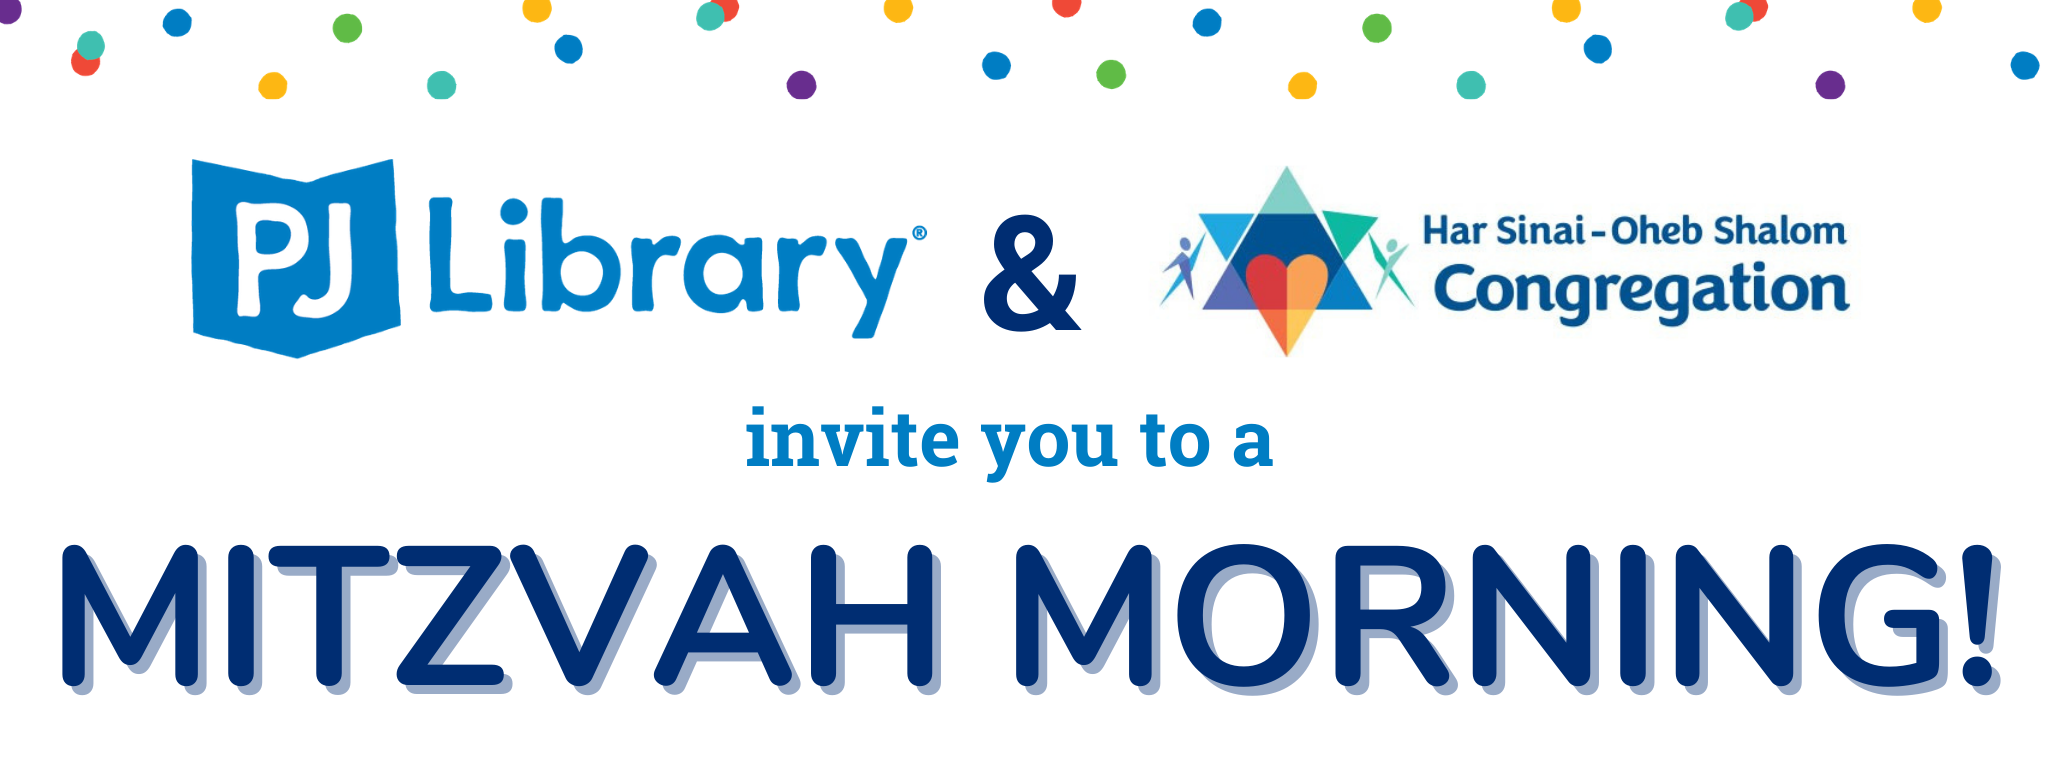 Mitzvah Morning - header (2).png